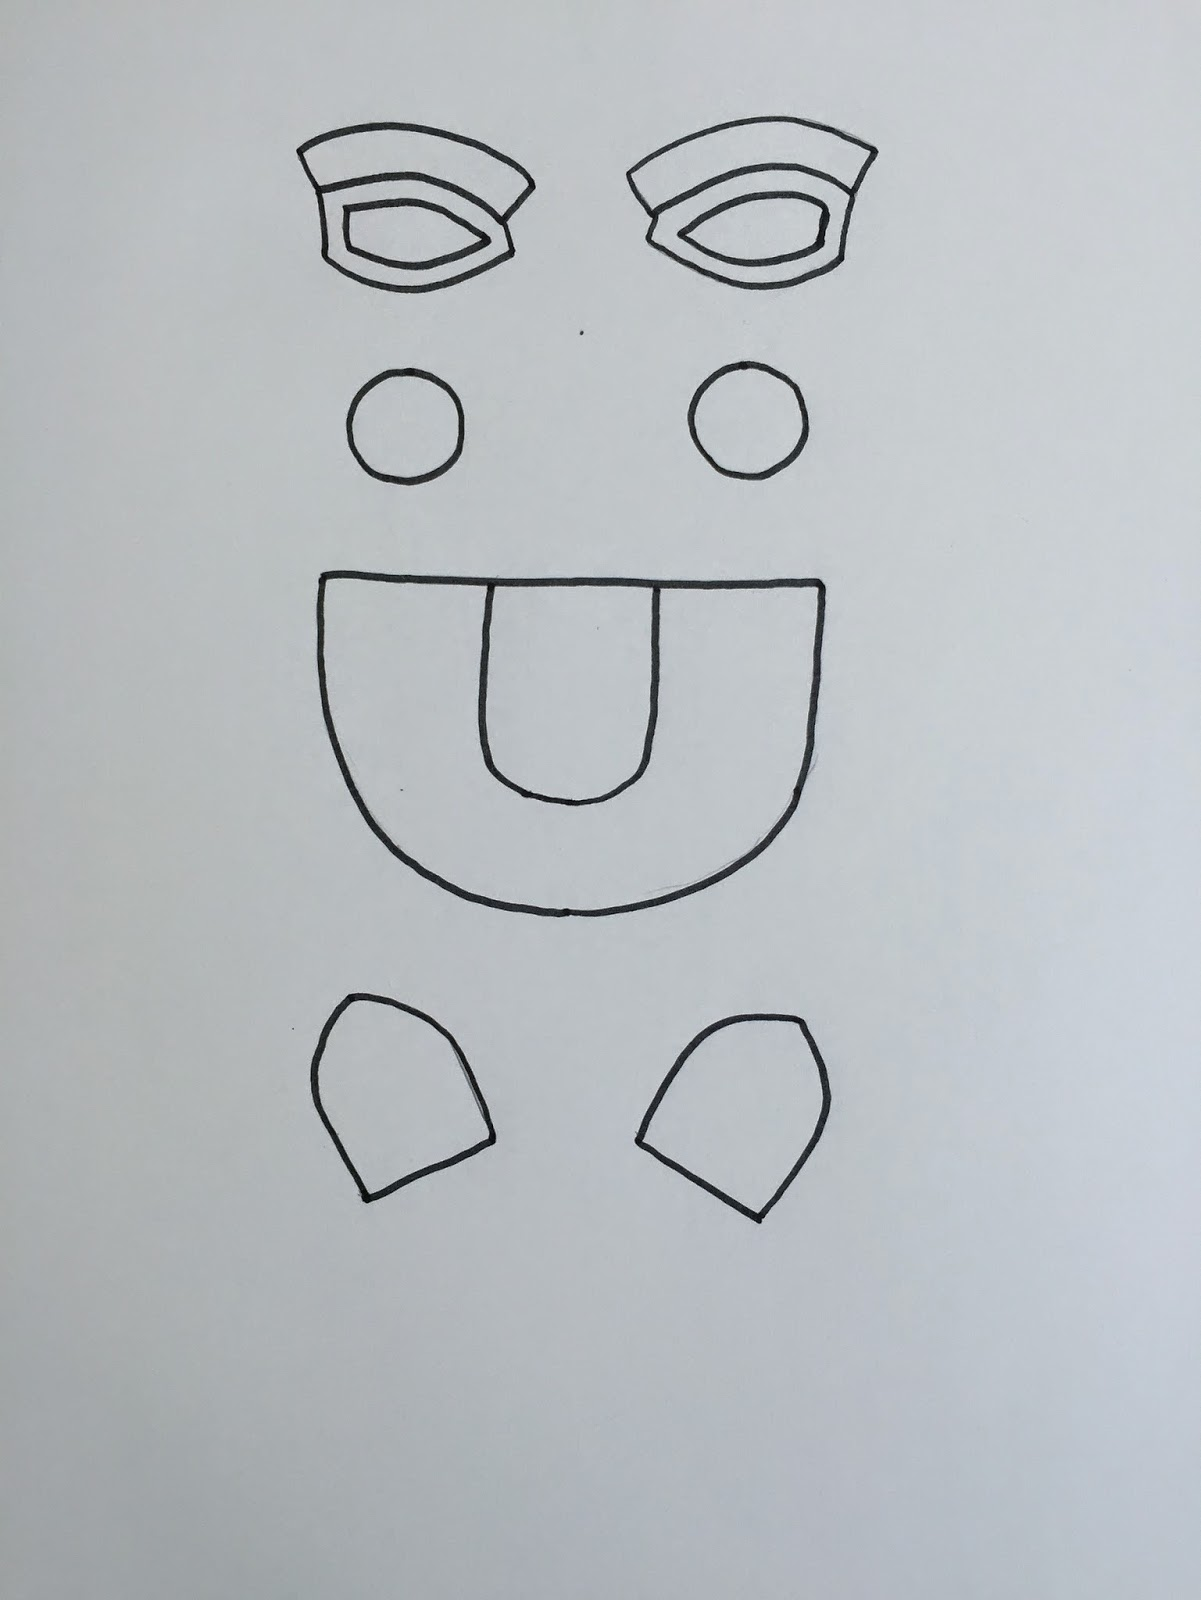 Excellent Puppet Head Template Pictures Inspiration - Examples ...